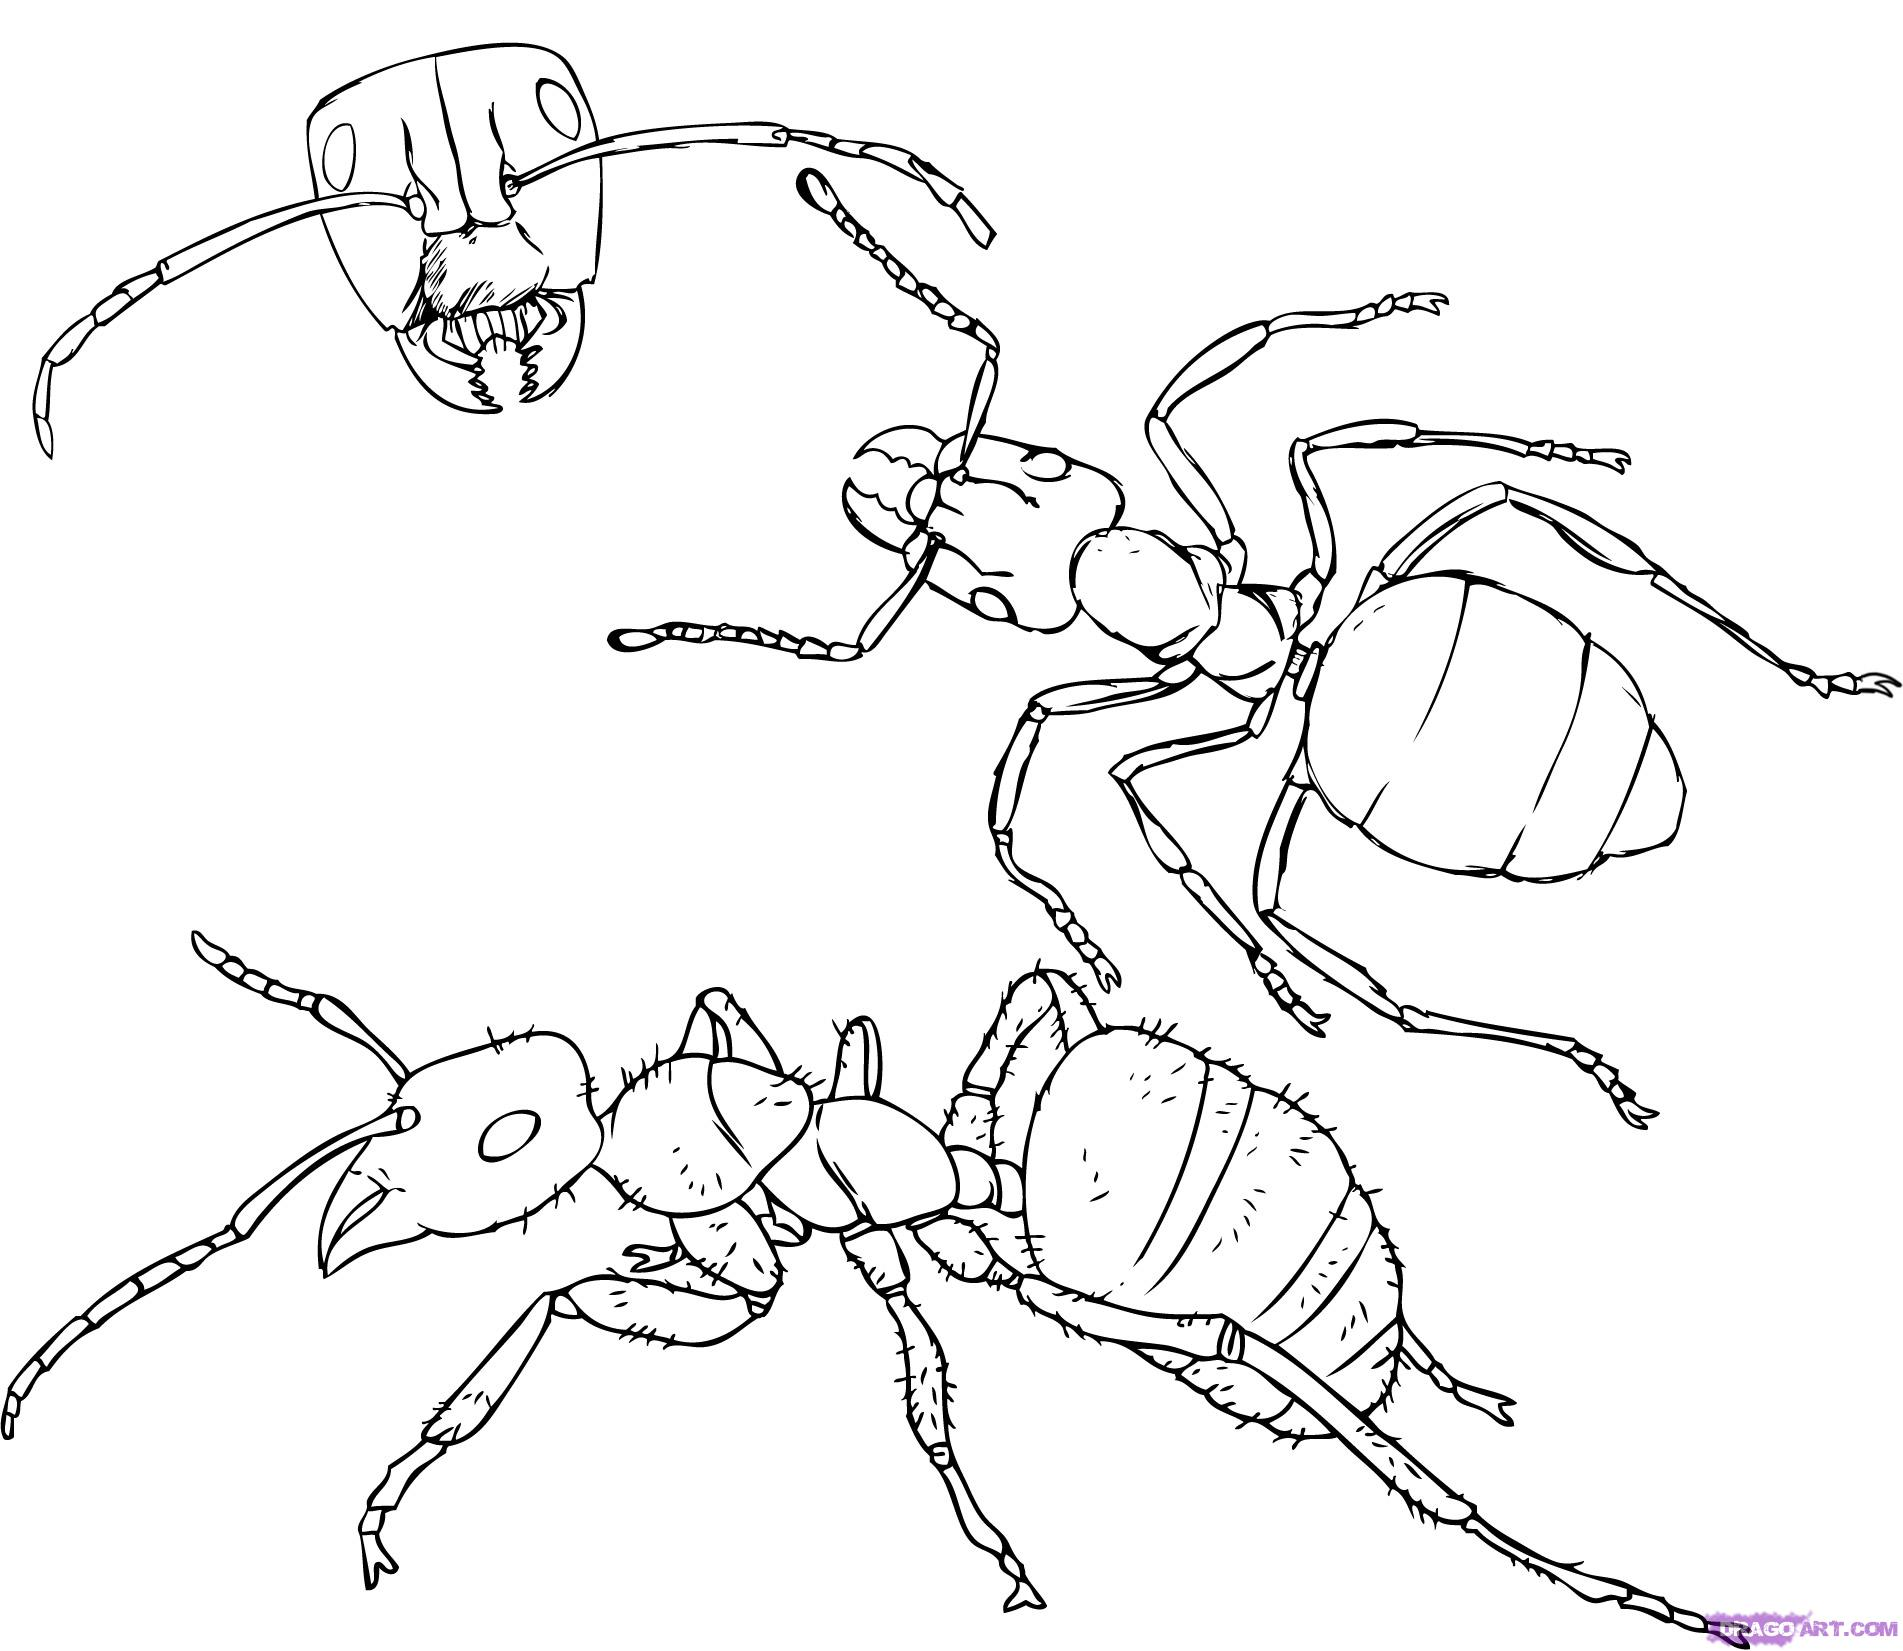 how to draw ant free image